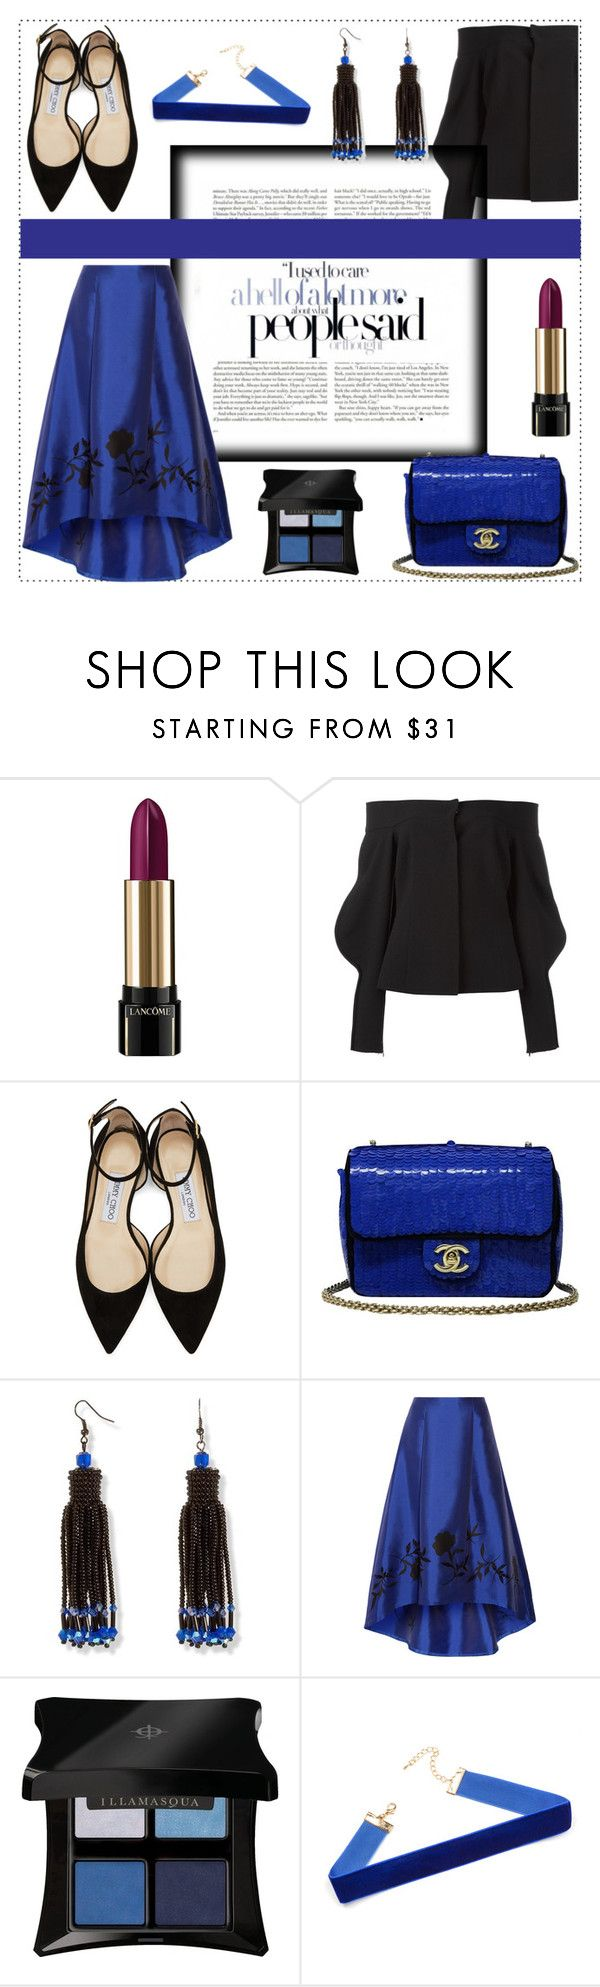 """Good to be back"" by hereisalessia ❤ liked on Polyvore featuring Lancôme, Natasha Zinko, Jimmy Choo, Chanel, NOIR Sachin + Babi and Illamasqua"